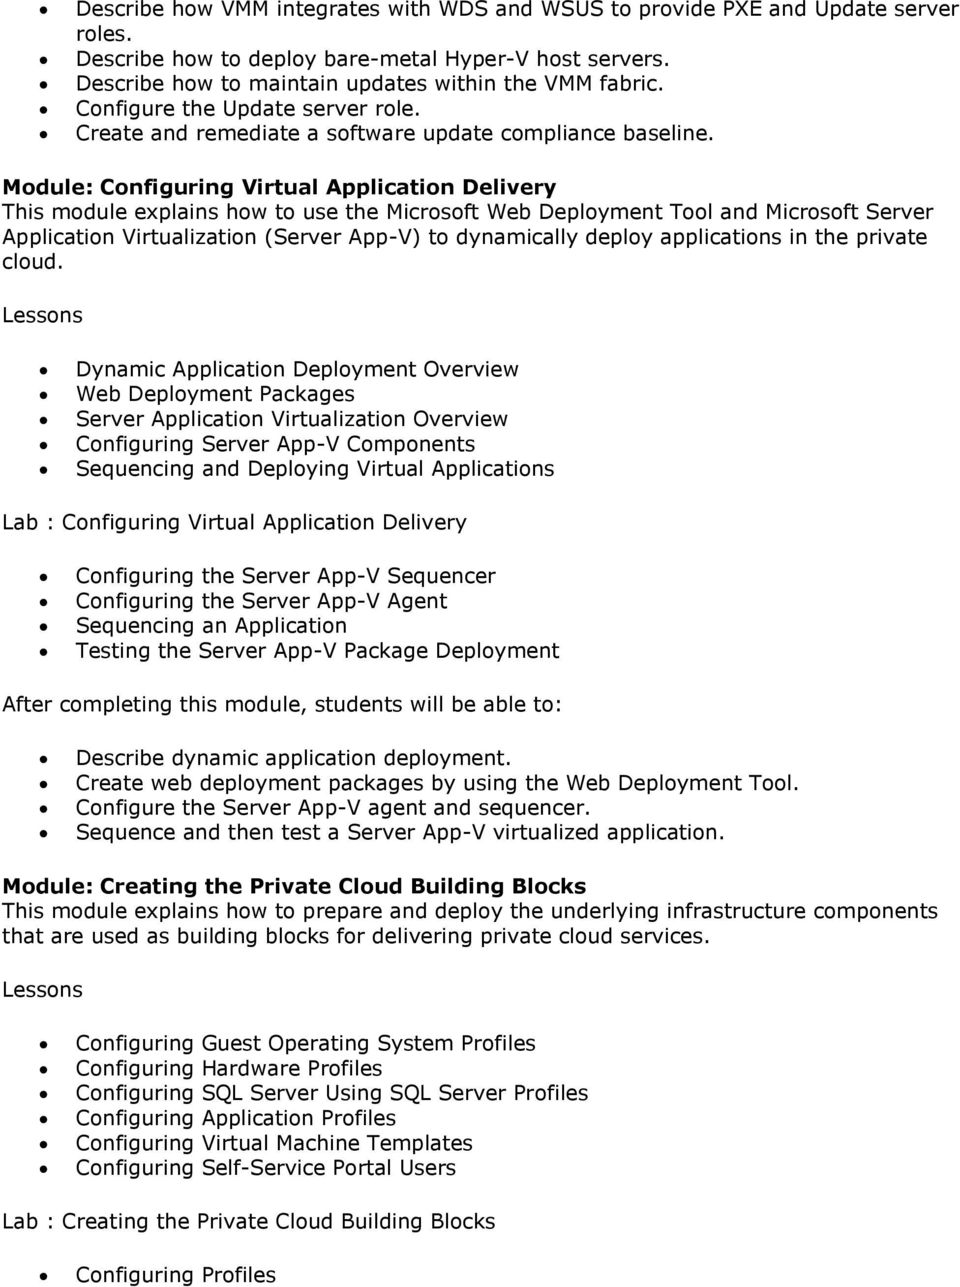 Mdule: Cnfiguring Virtual Applicatin Delivery This mdule explains hw t use the Micrsft Web Deplyment Tl and Micrsft Server Applicatin Virtualizatin (Server App-V) t dynamically deply applicatins in